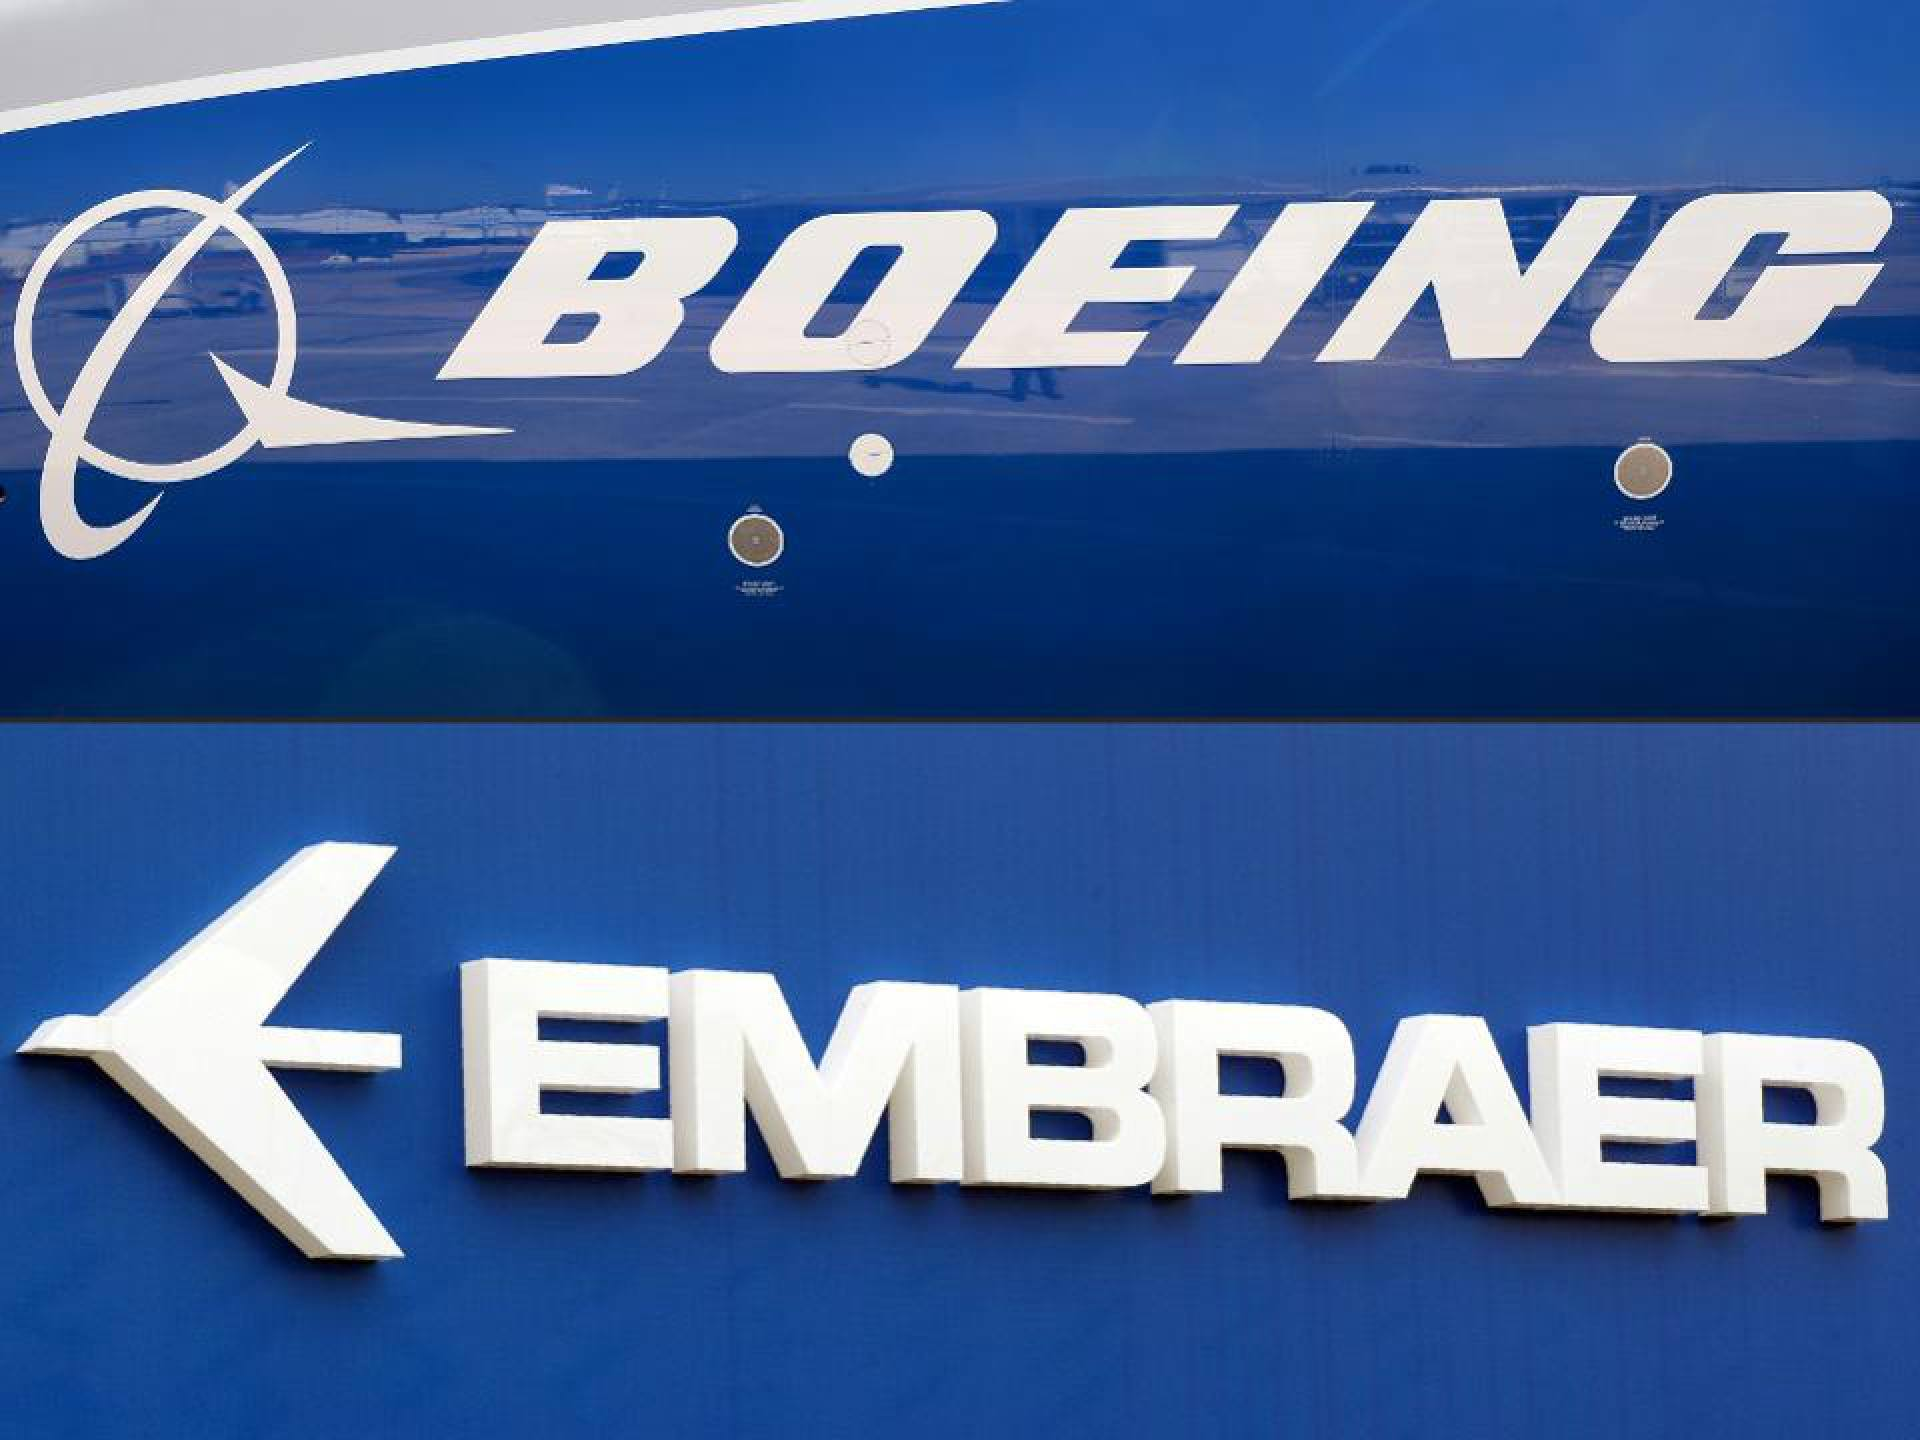 Brazil approved merging of Boeing and Embraer companies